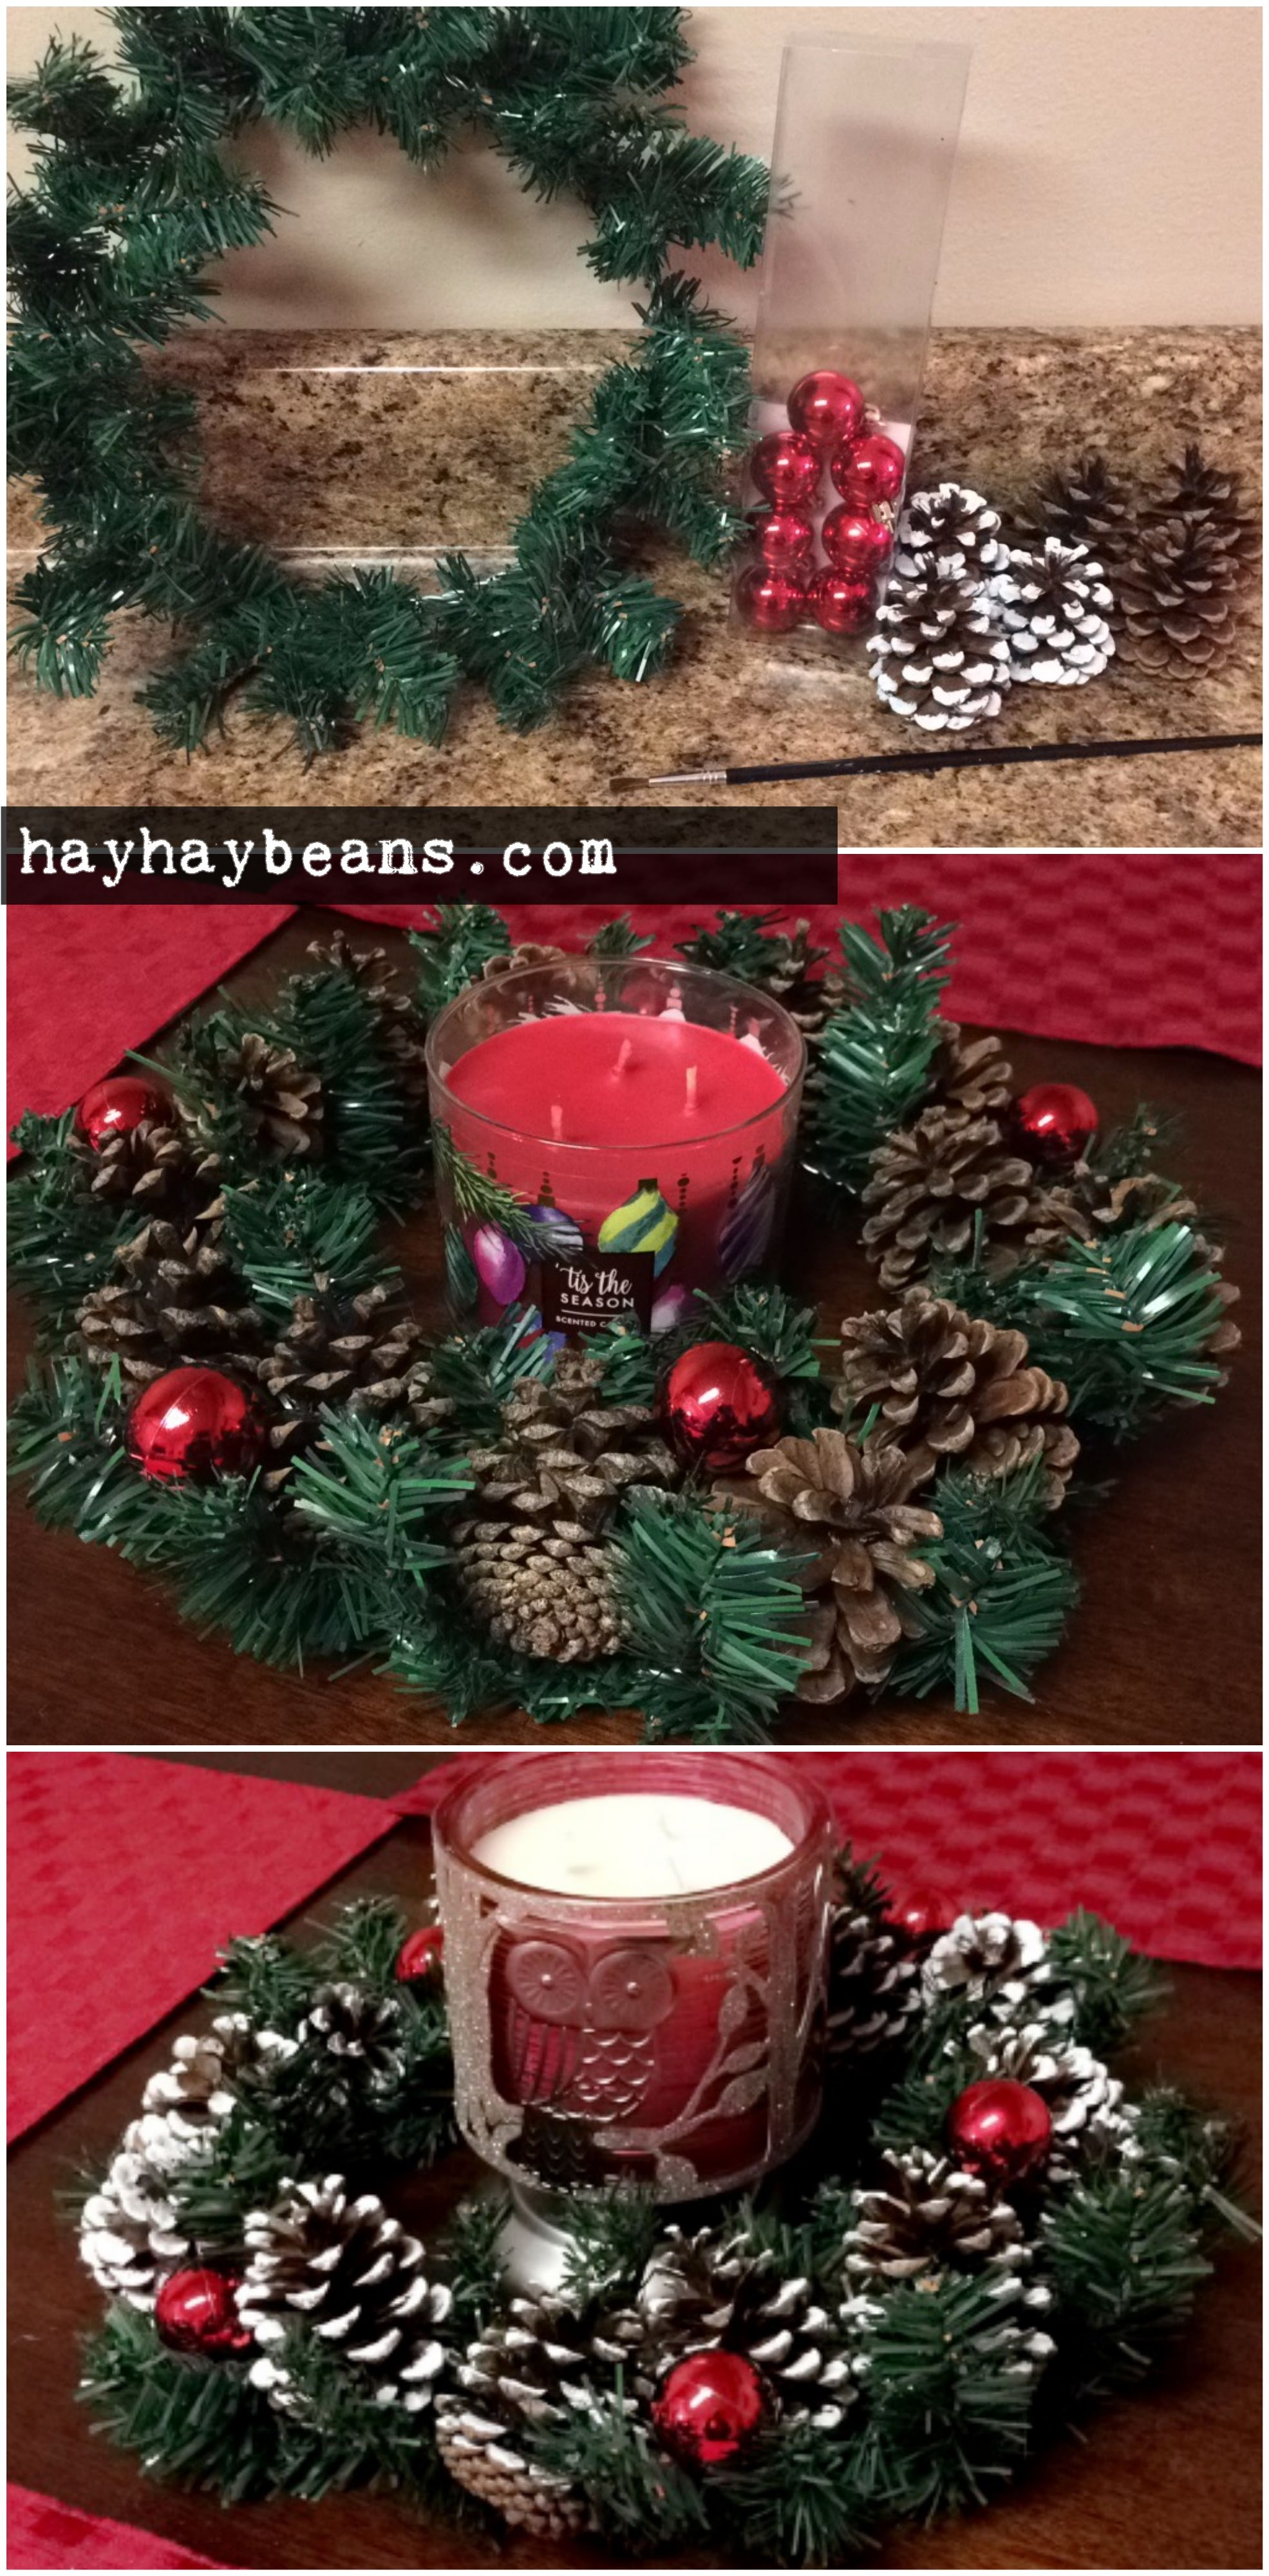 Christmas Centerpiece Set Of Five Christmas Centerpieces Corporate Holiday Party Corp Christmas Centerpieces Diy Christmas Party Centerpieces Christmas Diy